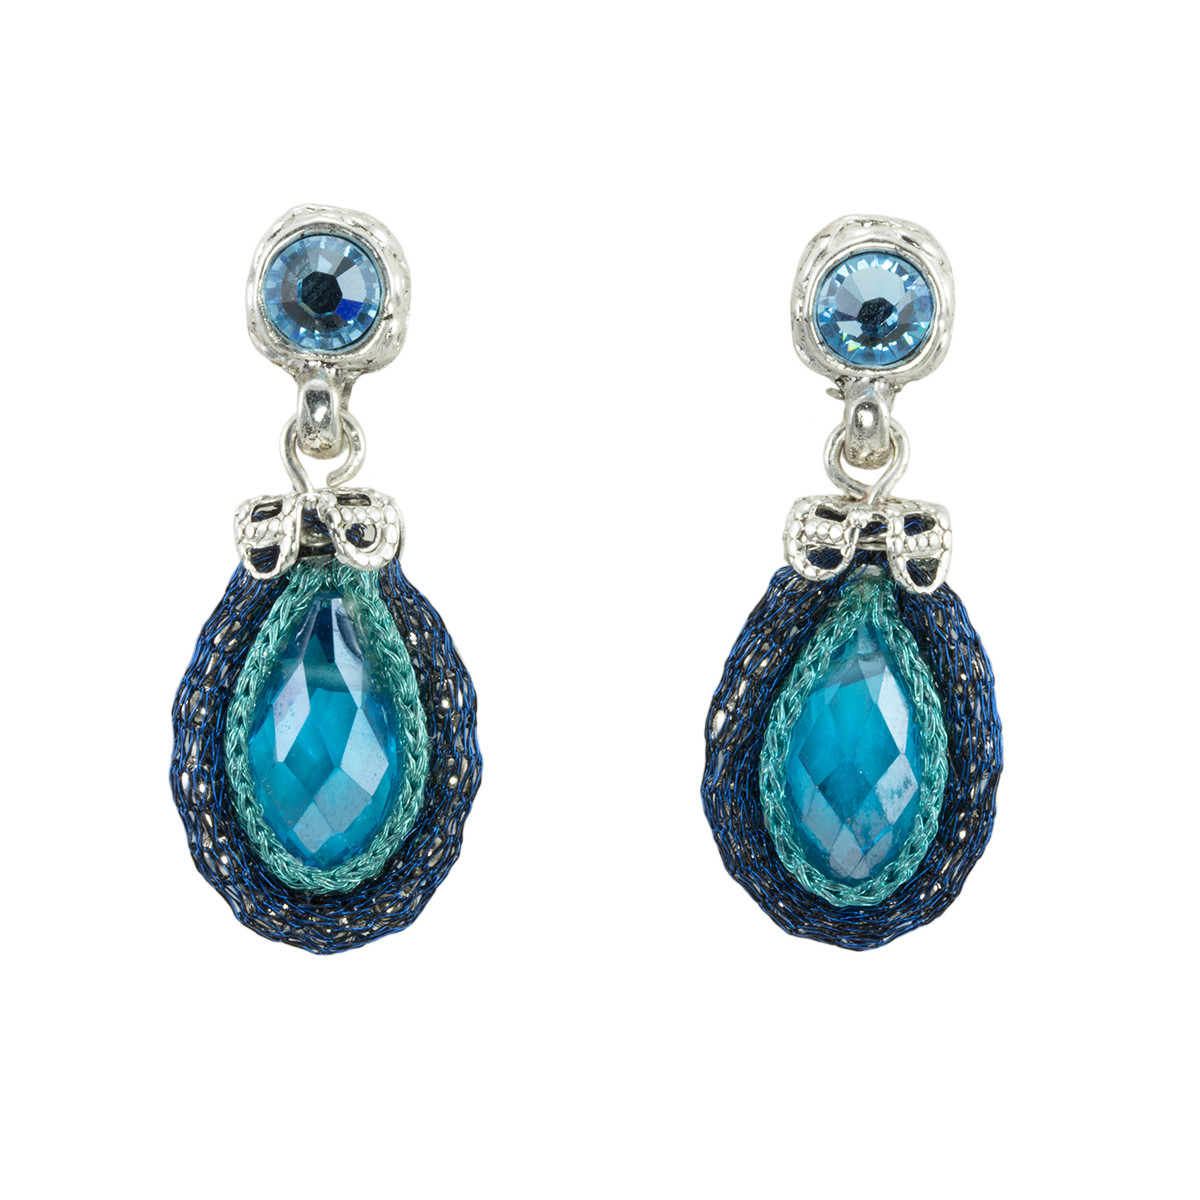 Blue Joy Nouveau Glam earrings from Anat Jewelry